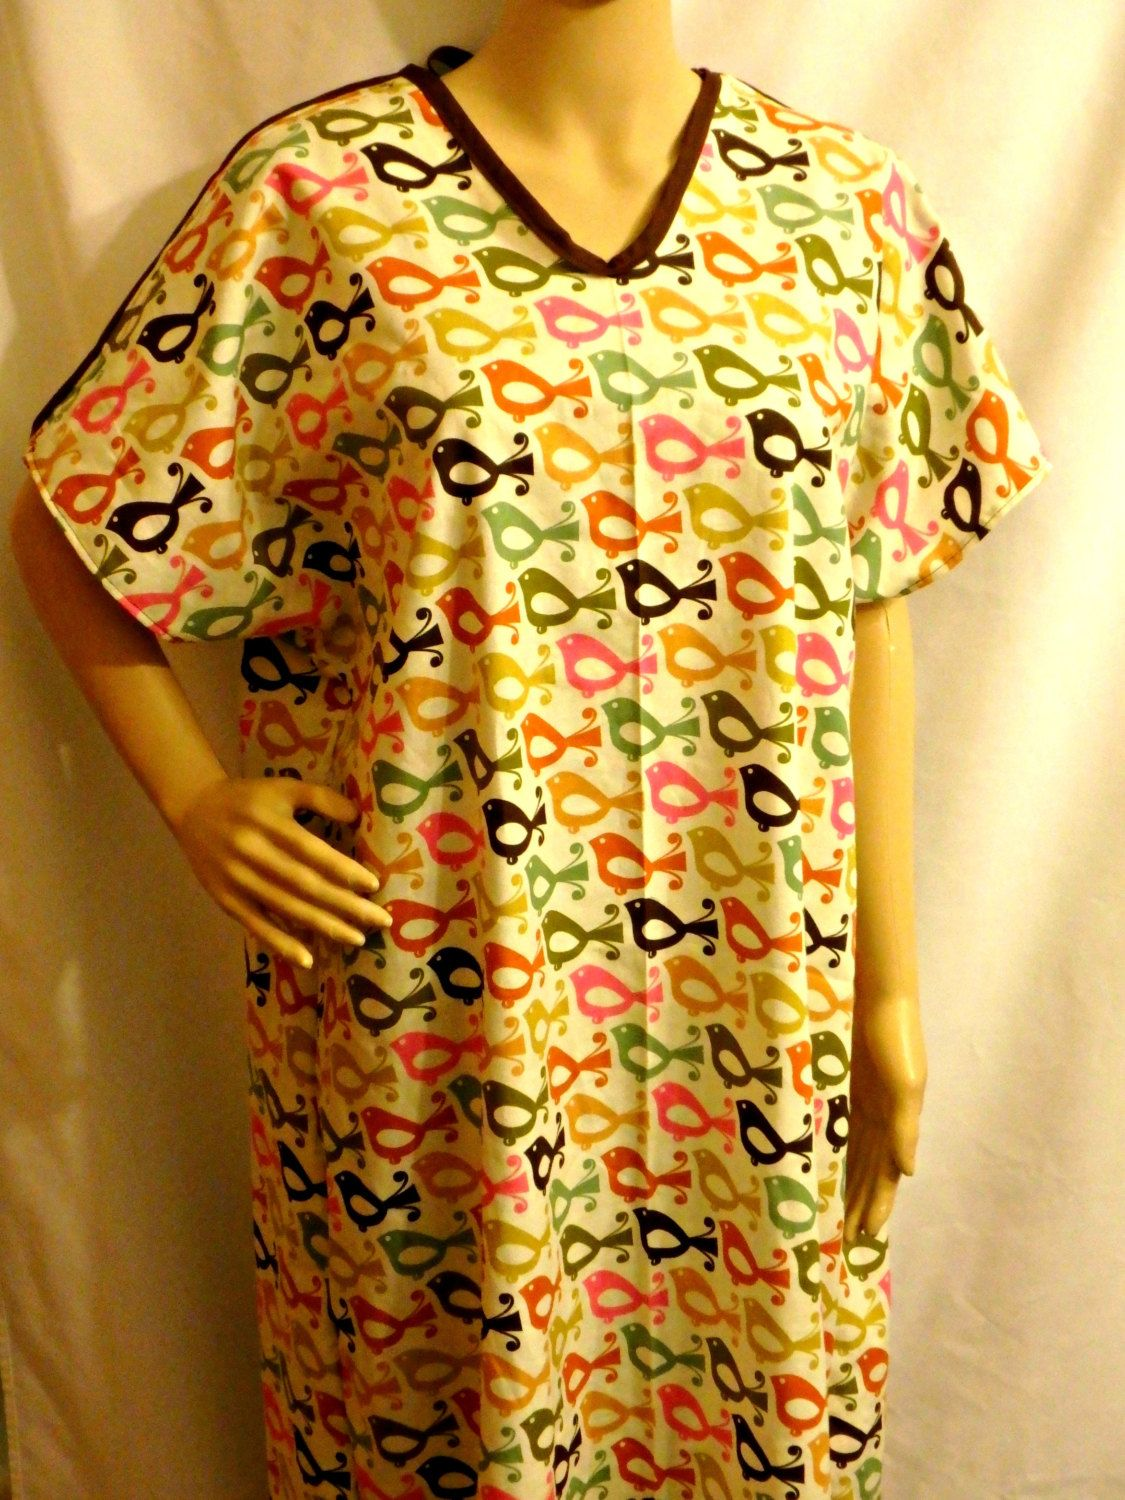 Cotton IV Hospital Gown for Bed bound Fits up to Plus Size ...